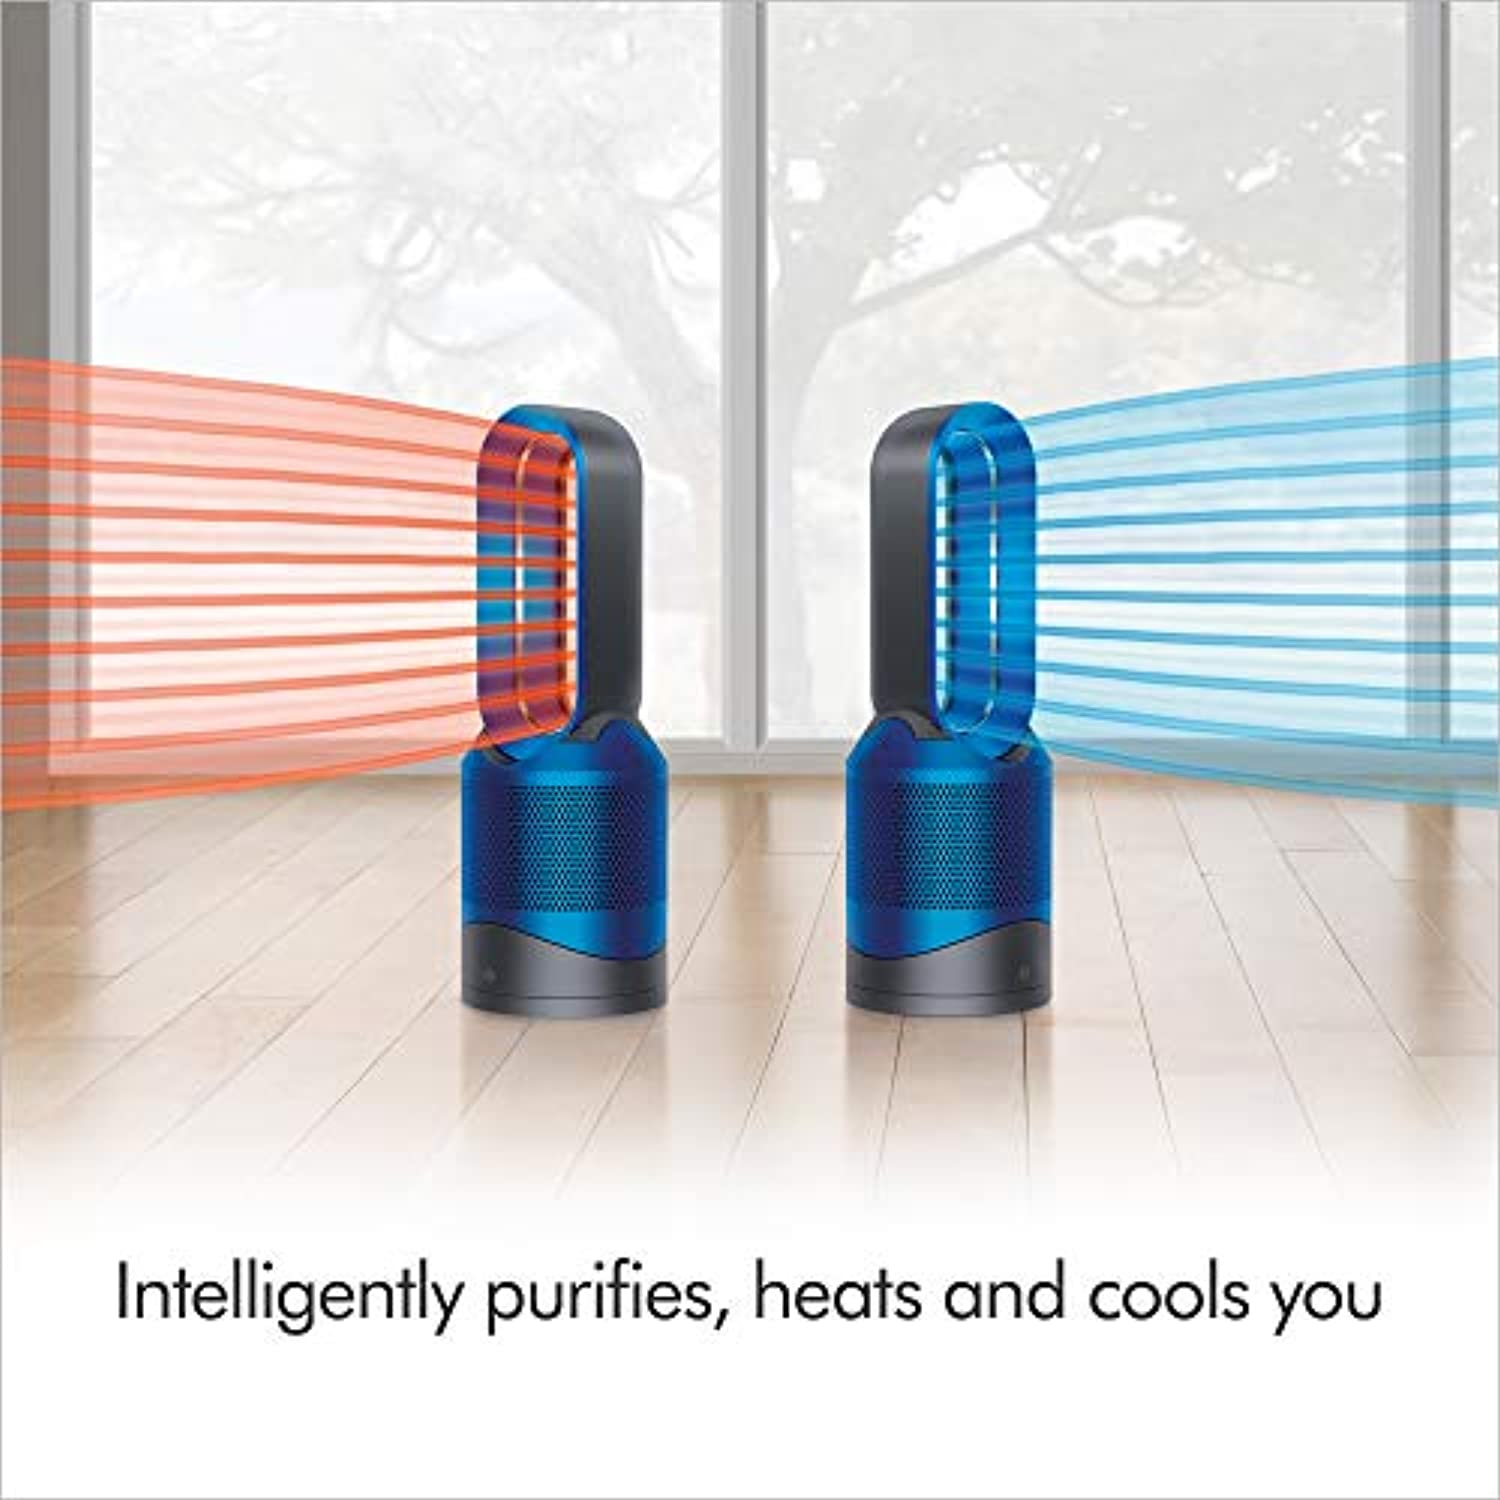 Classier: Buy Dyson Dyson Pure Hot + Cool, HP02 - HEPA Air Purifier, Space Heater & Fan, WiFi-Enabled, For Large Rooms, Automatically Removes Allergens, Pollutants, Dust, Mold, VOCs, Blue